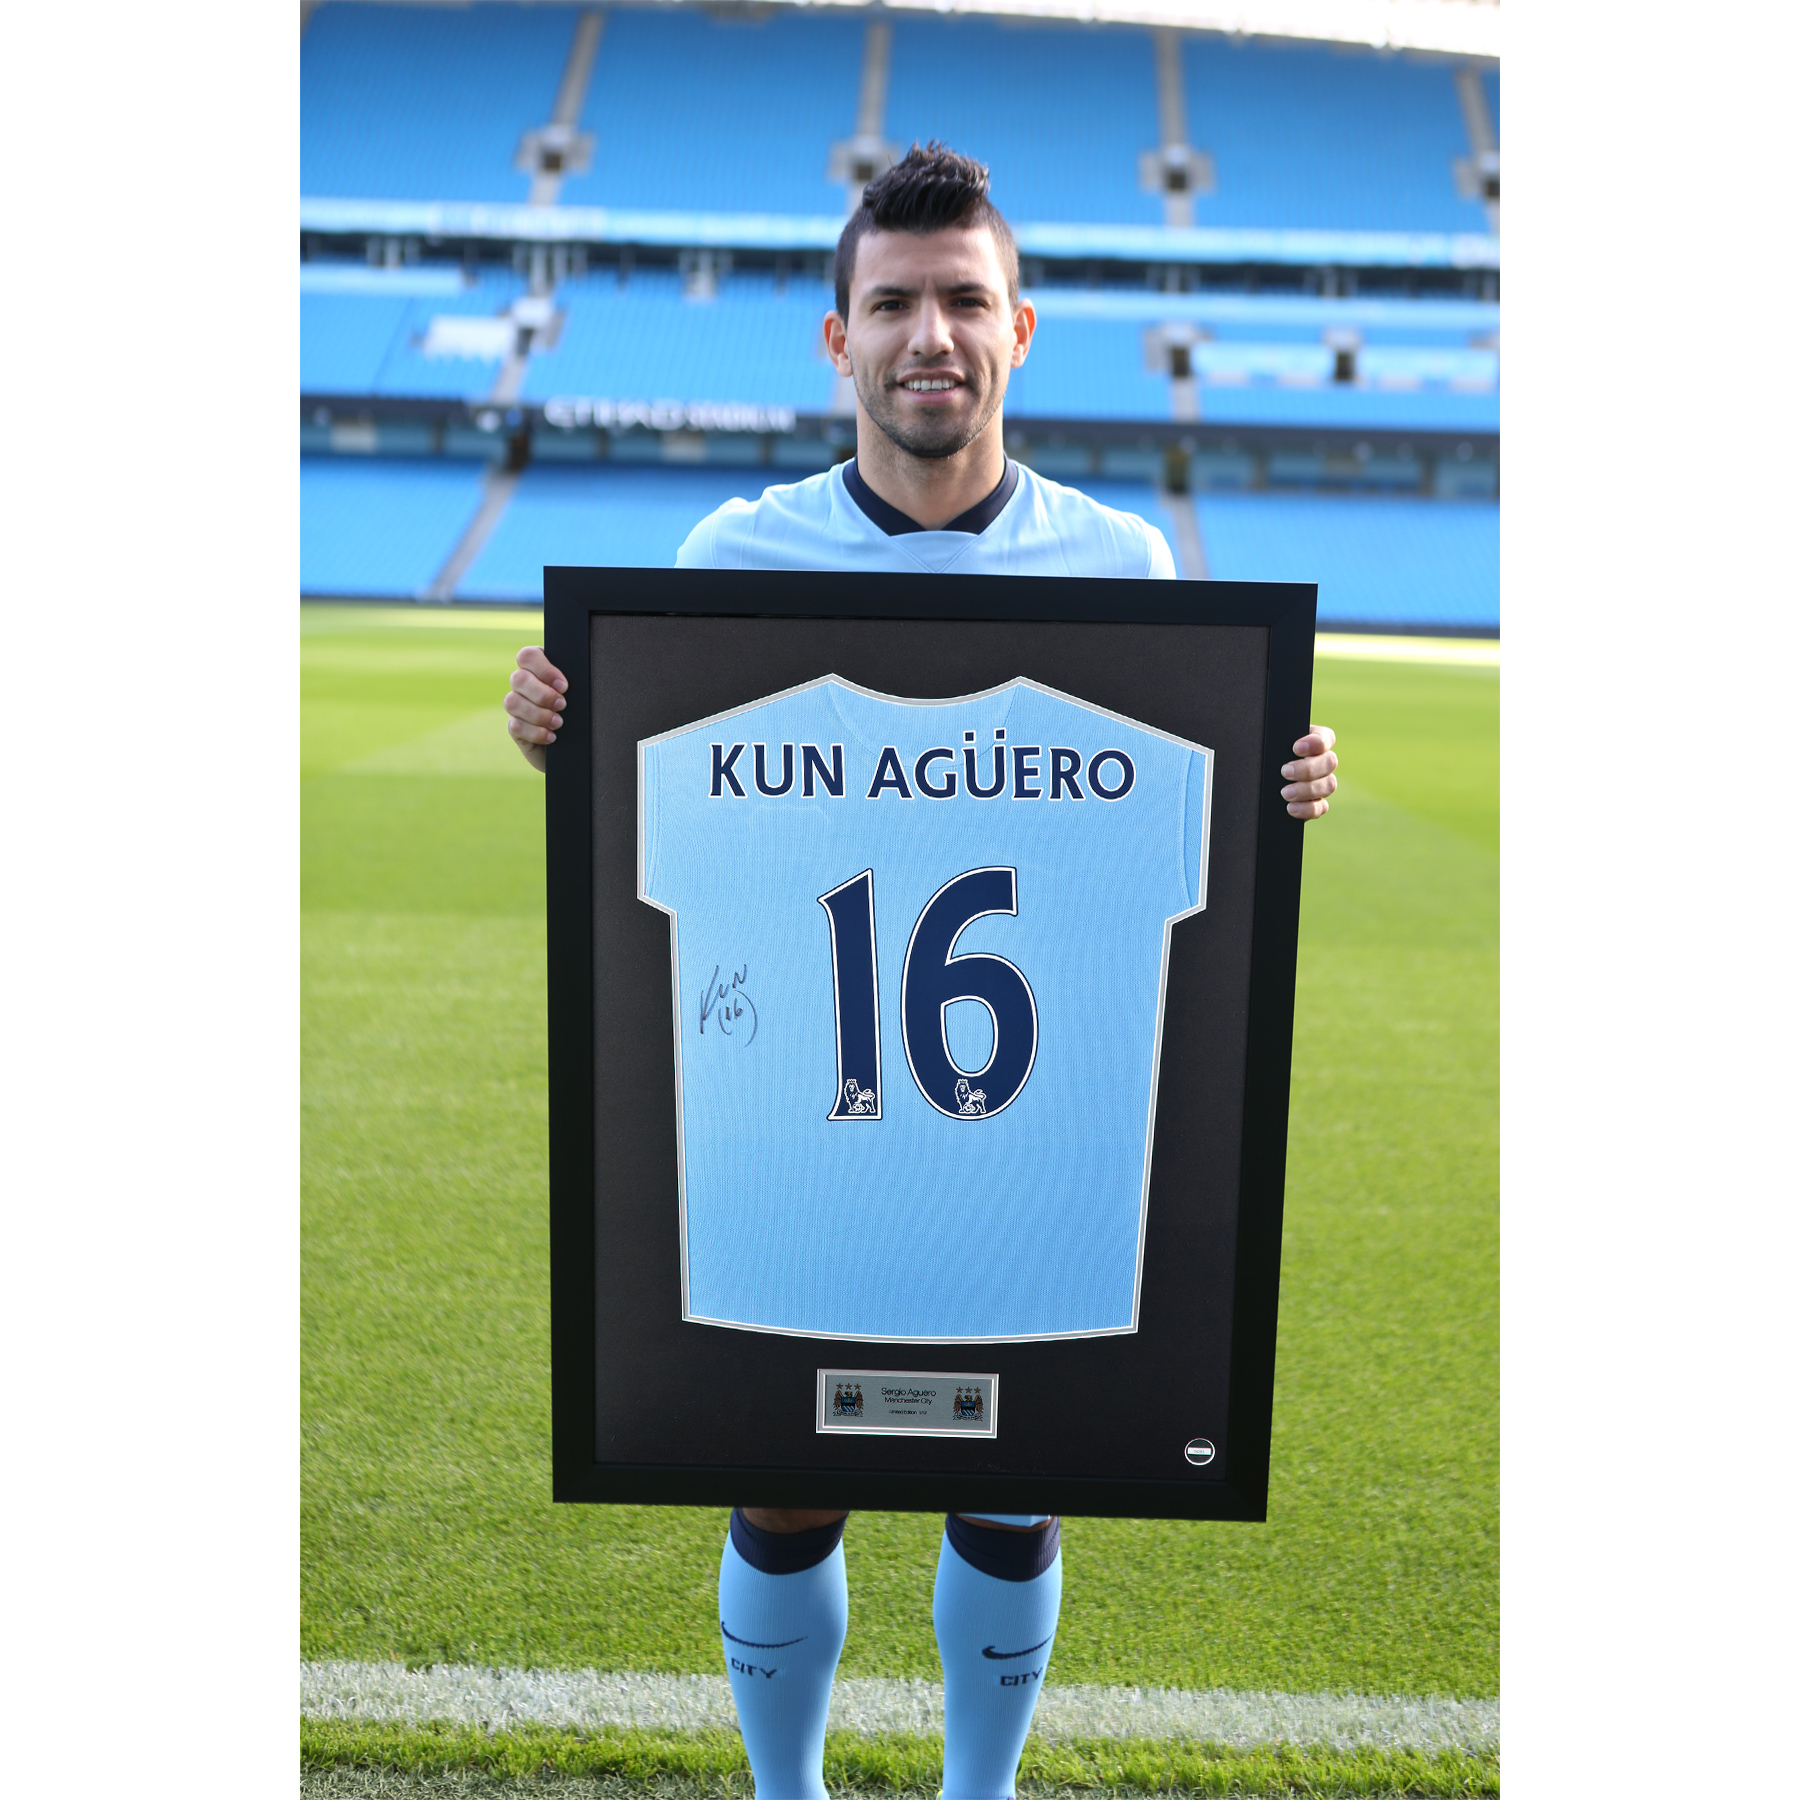 Manchester City Framed 2014/15 Home Shirt Signed - Kun Aguero